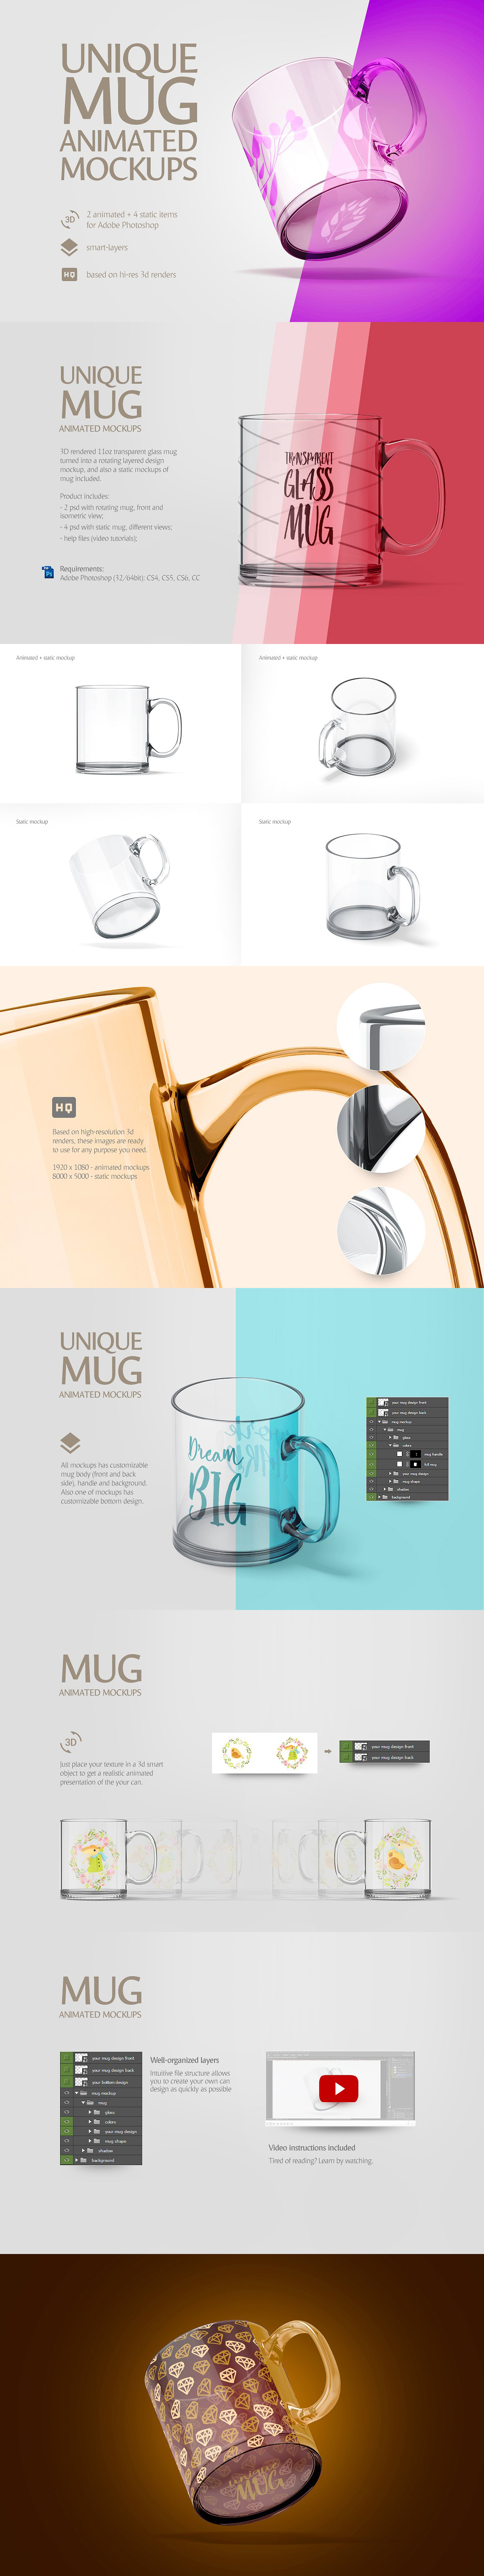 Mug Animated Mockups Bundle example image 4